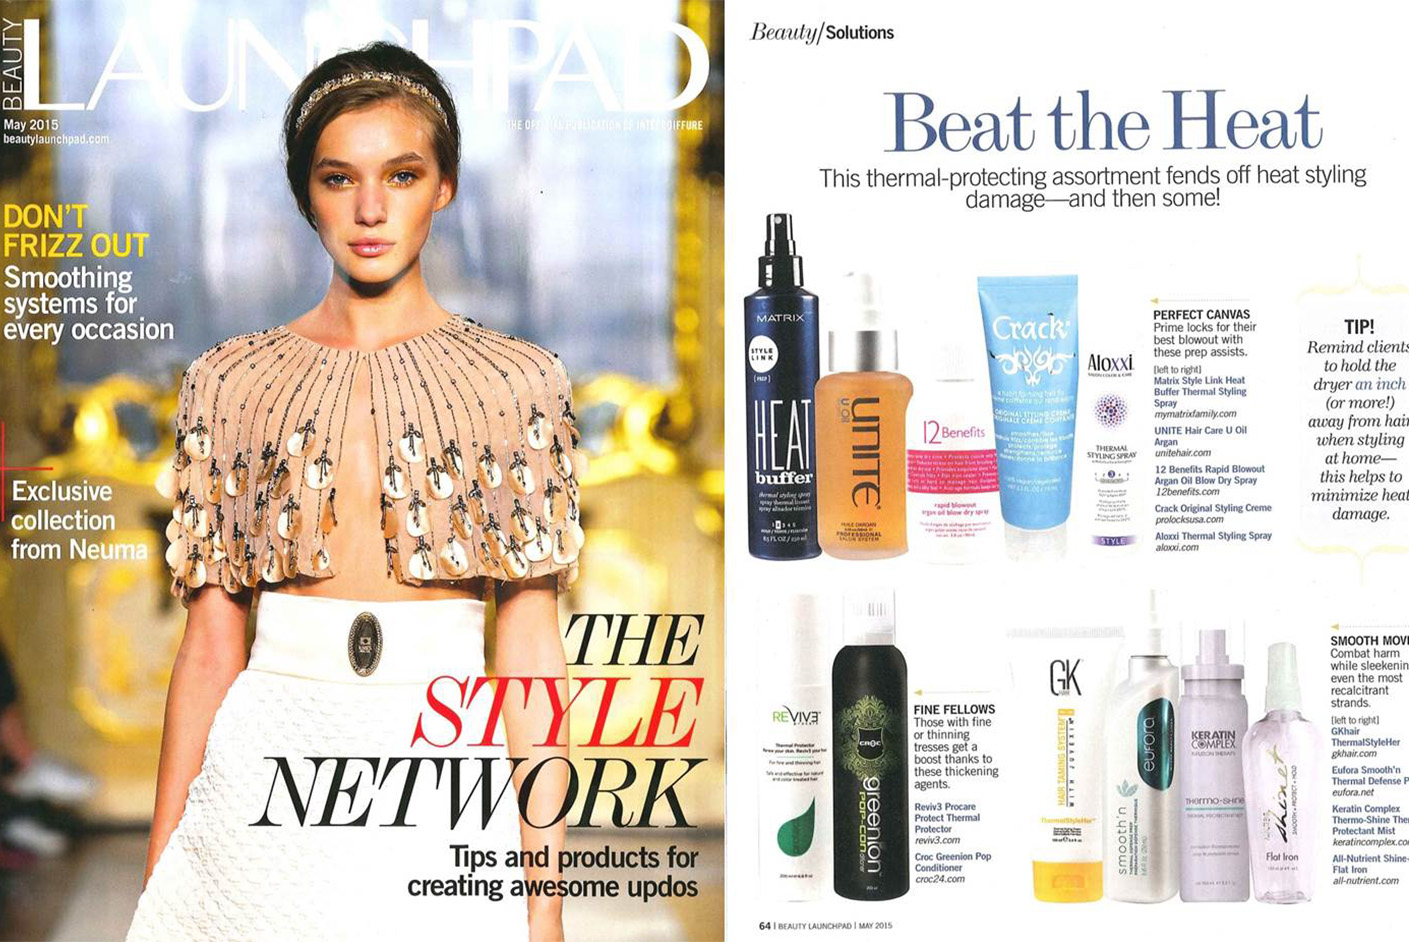 Matrix Haircare As Seen In LaunchPad Style Link May 2015 Full Spread